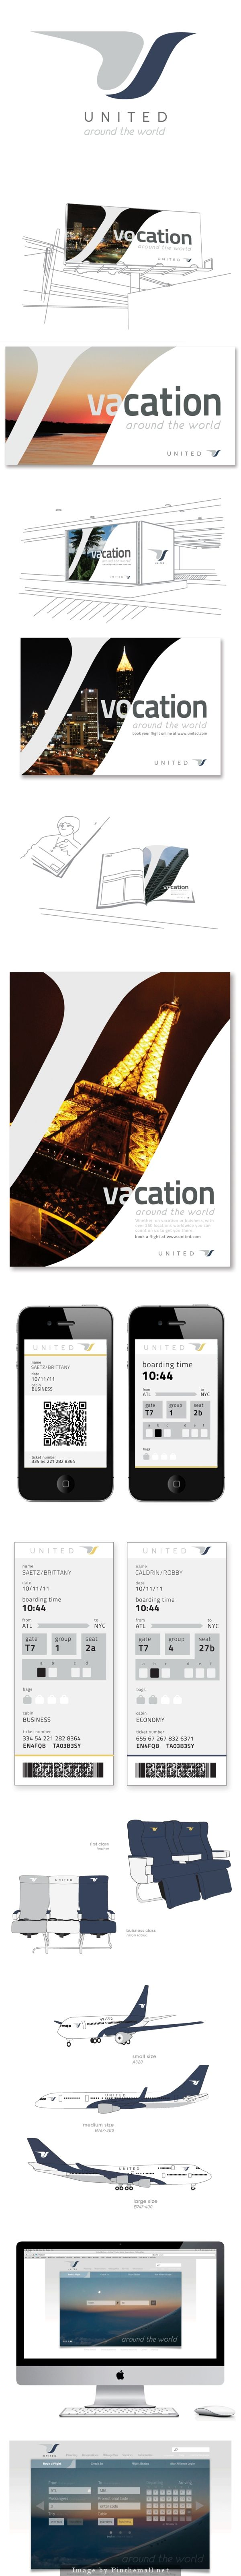 United Airlines Rebrand... - a grouped images picture - Pin Them All